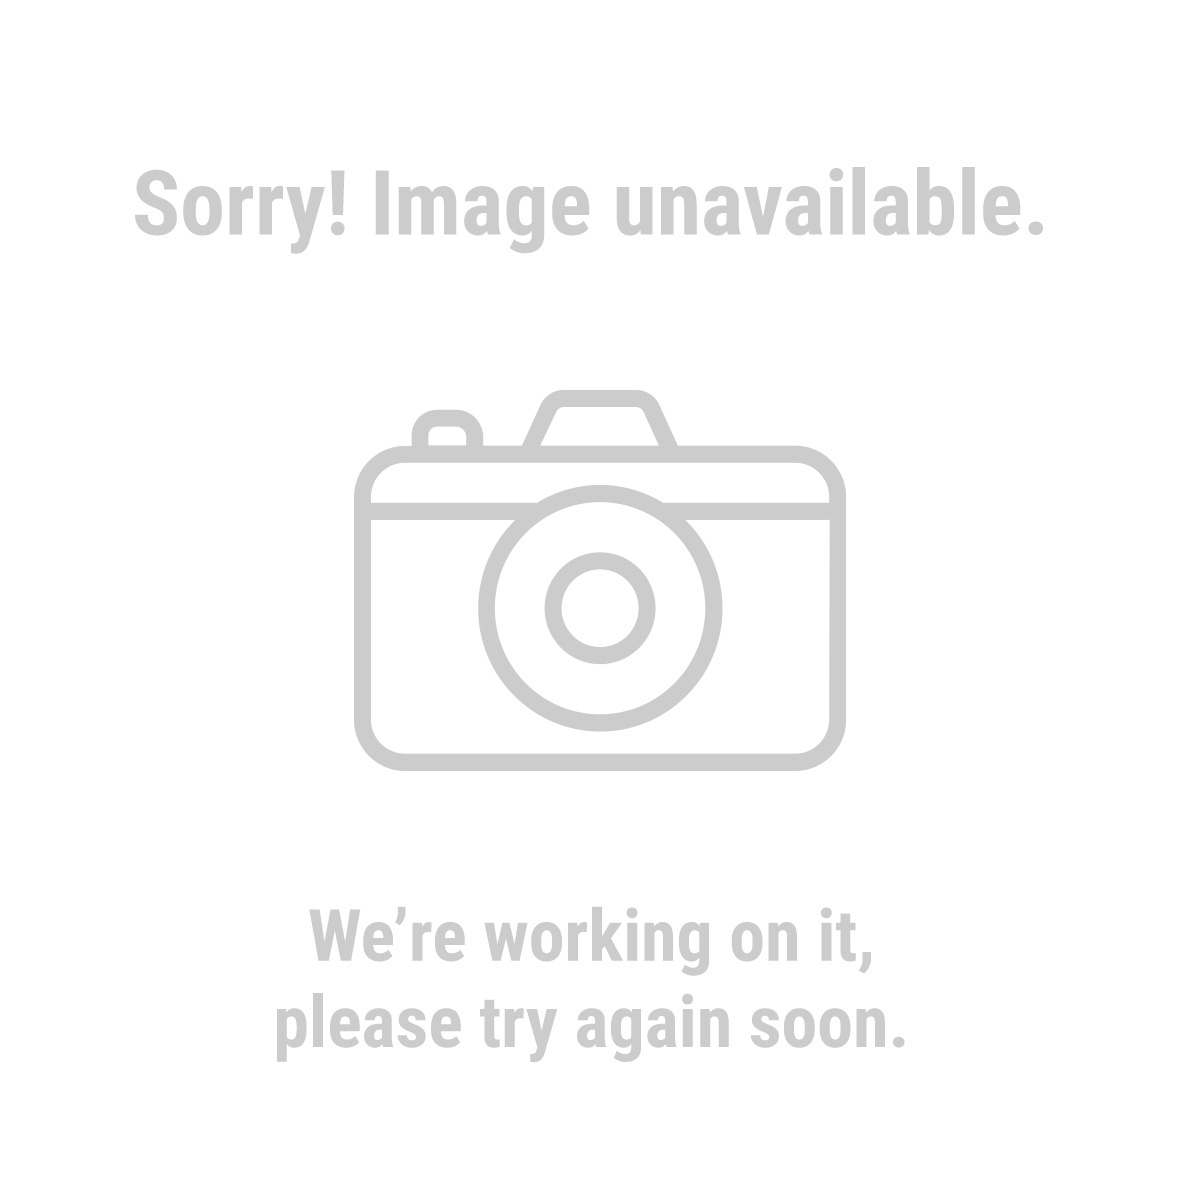 Pacific Hydrostar 69734 212 cc, 2500 PSI High Pressure Washer